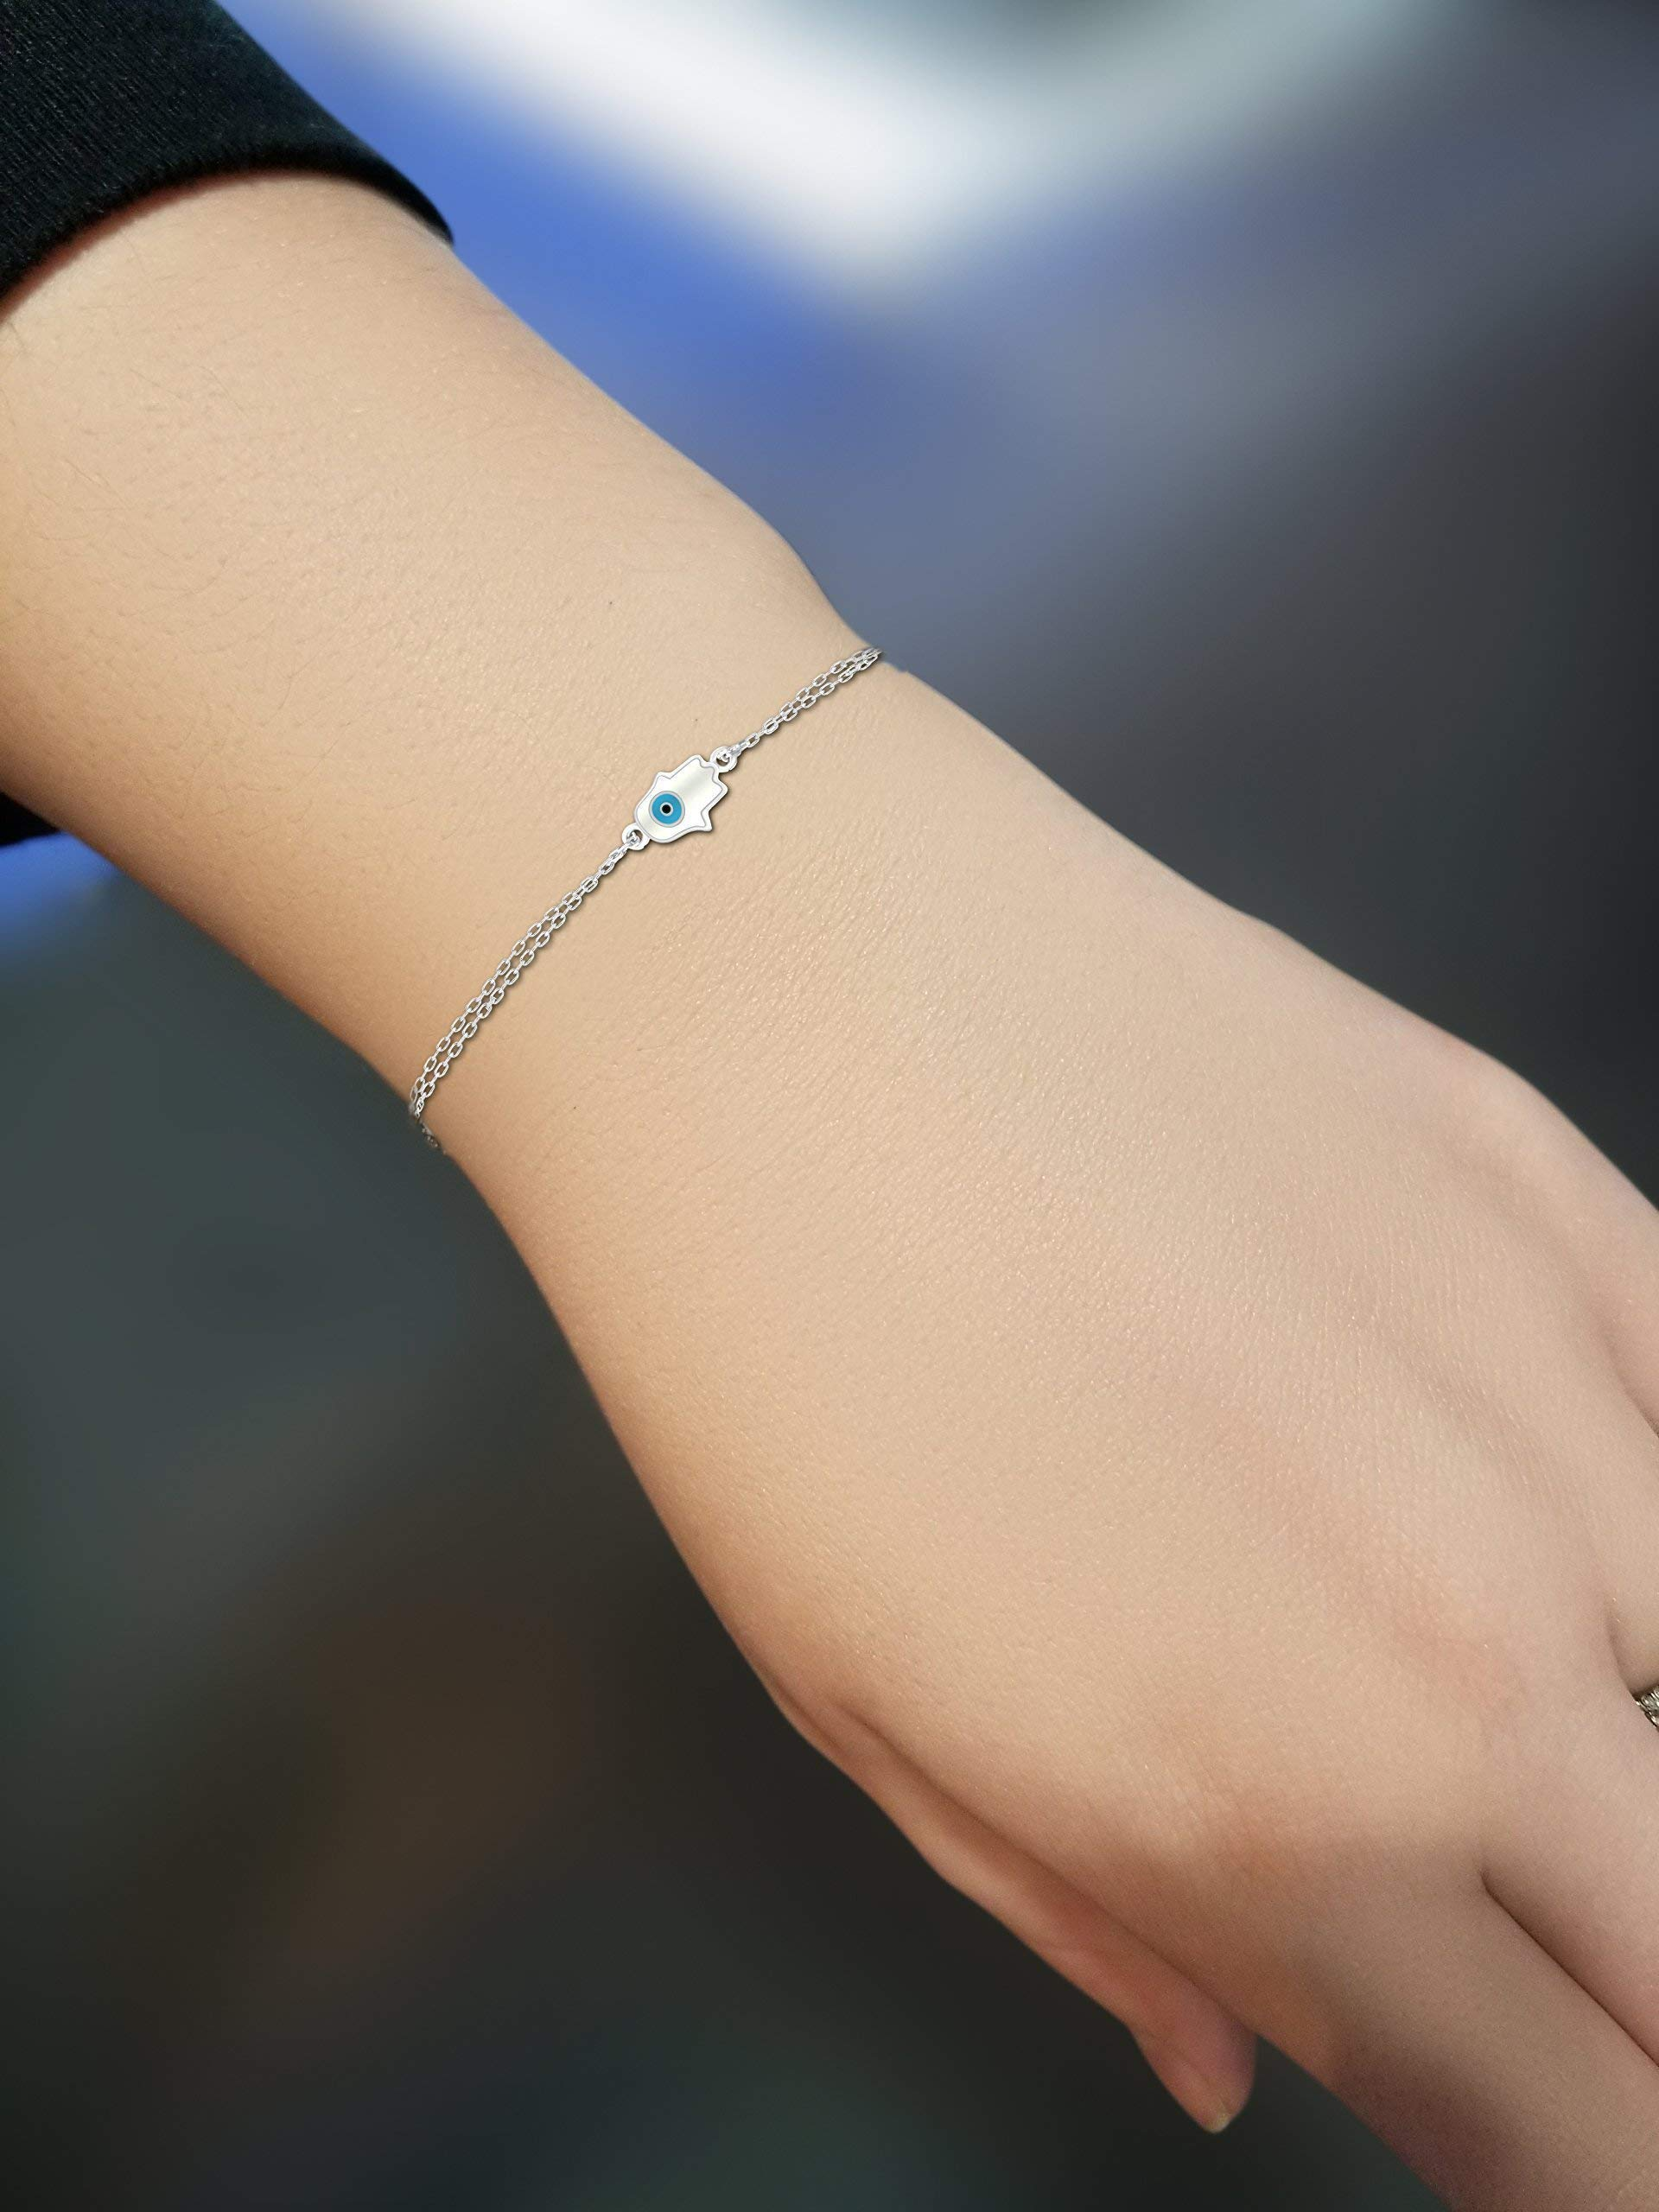 Hamsa and Evil Eye Bracelet in Sterling Silver To Watch Over & Protect You While Adding Daily Style